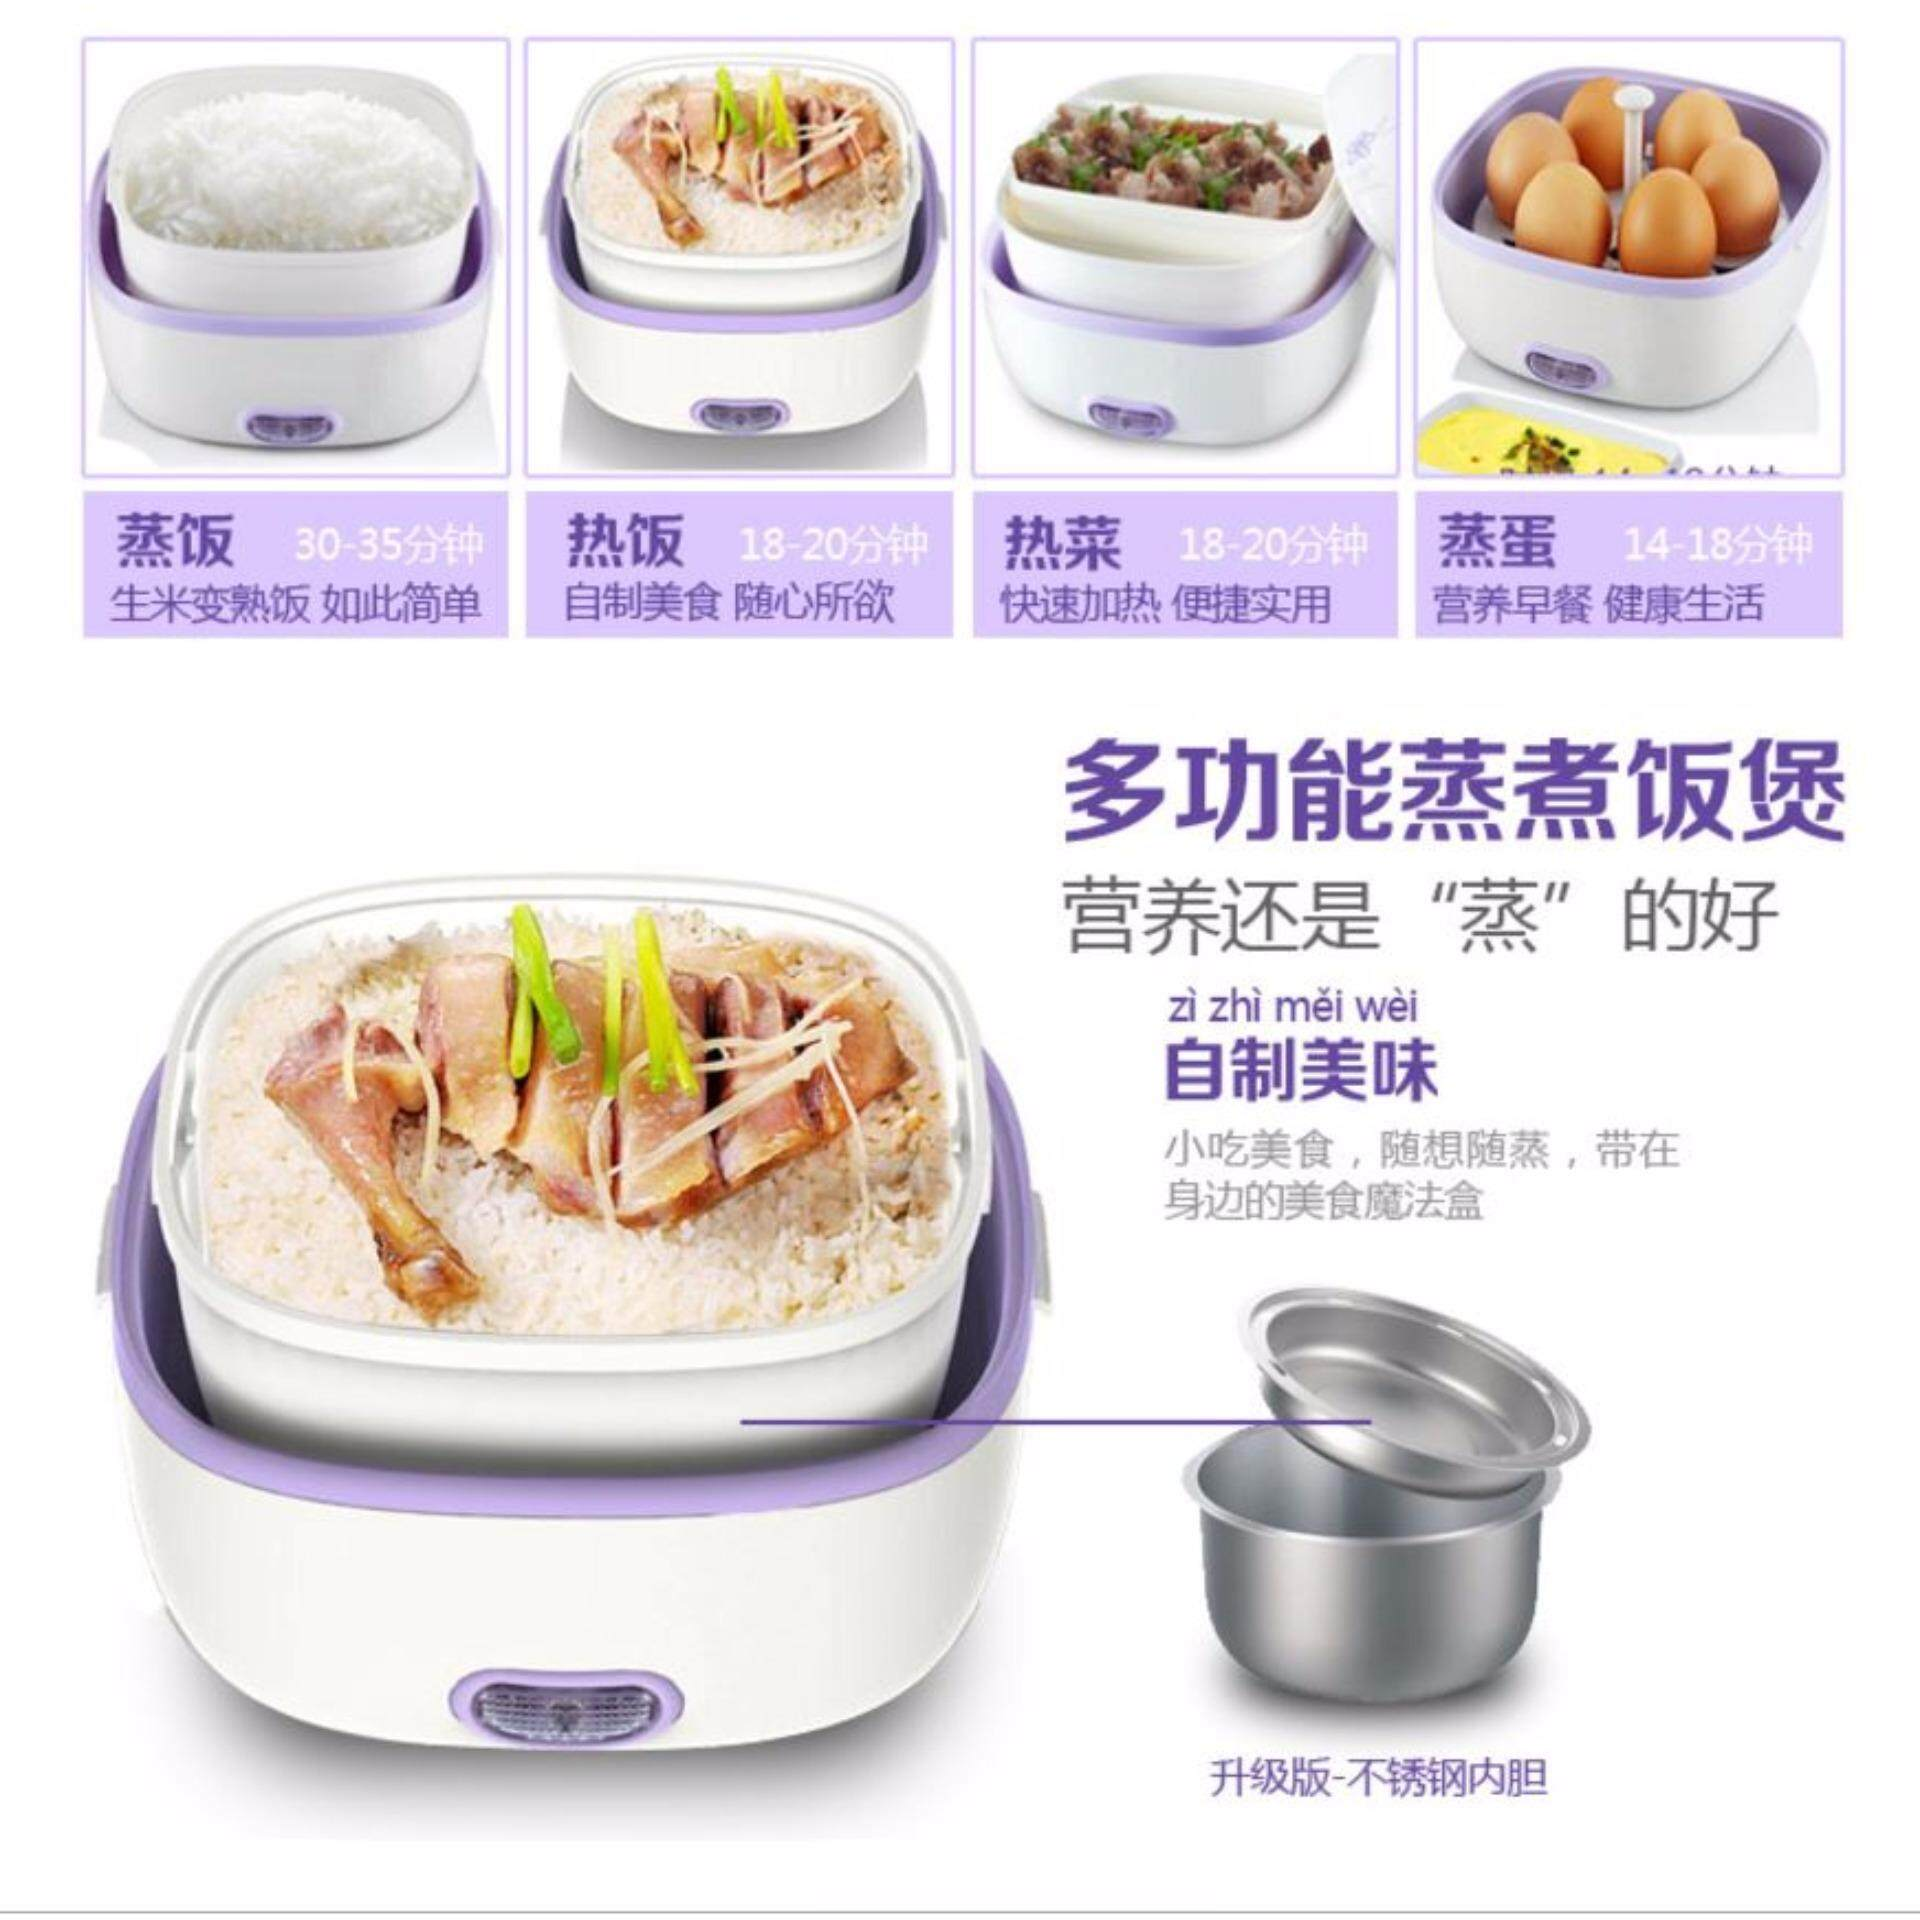 Multifunction Stainless Steel Electric Mini Rice Cooker Lunch Box (Purple)